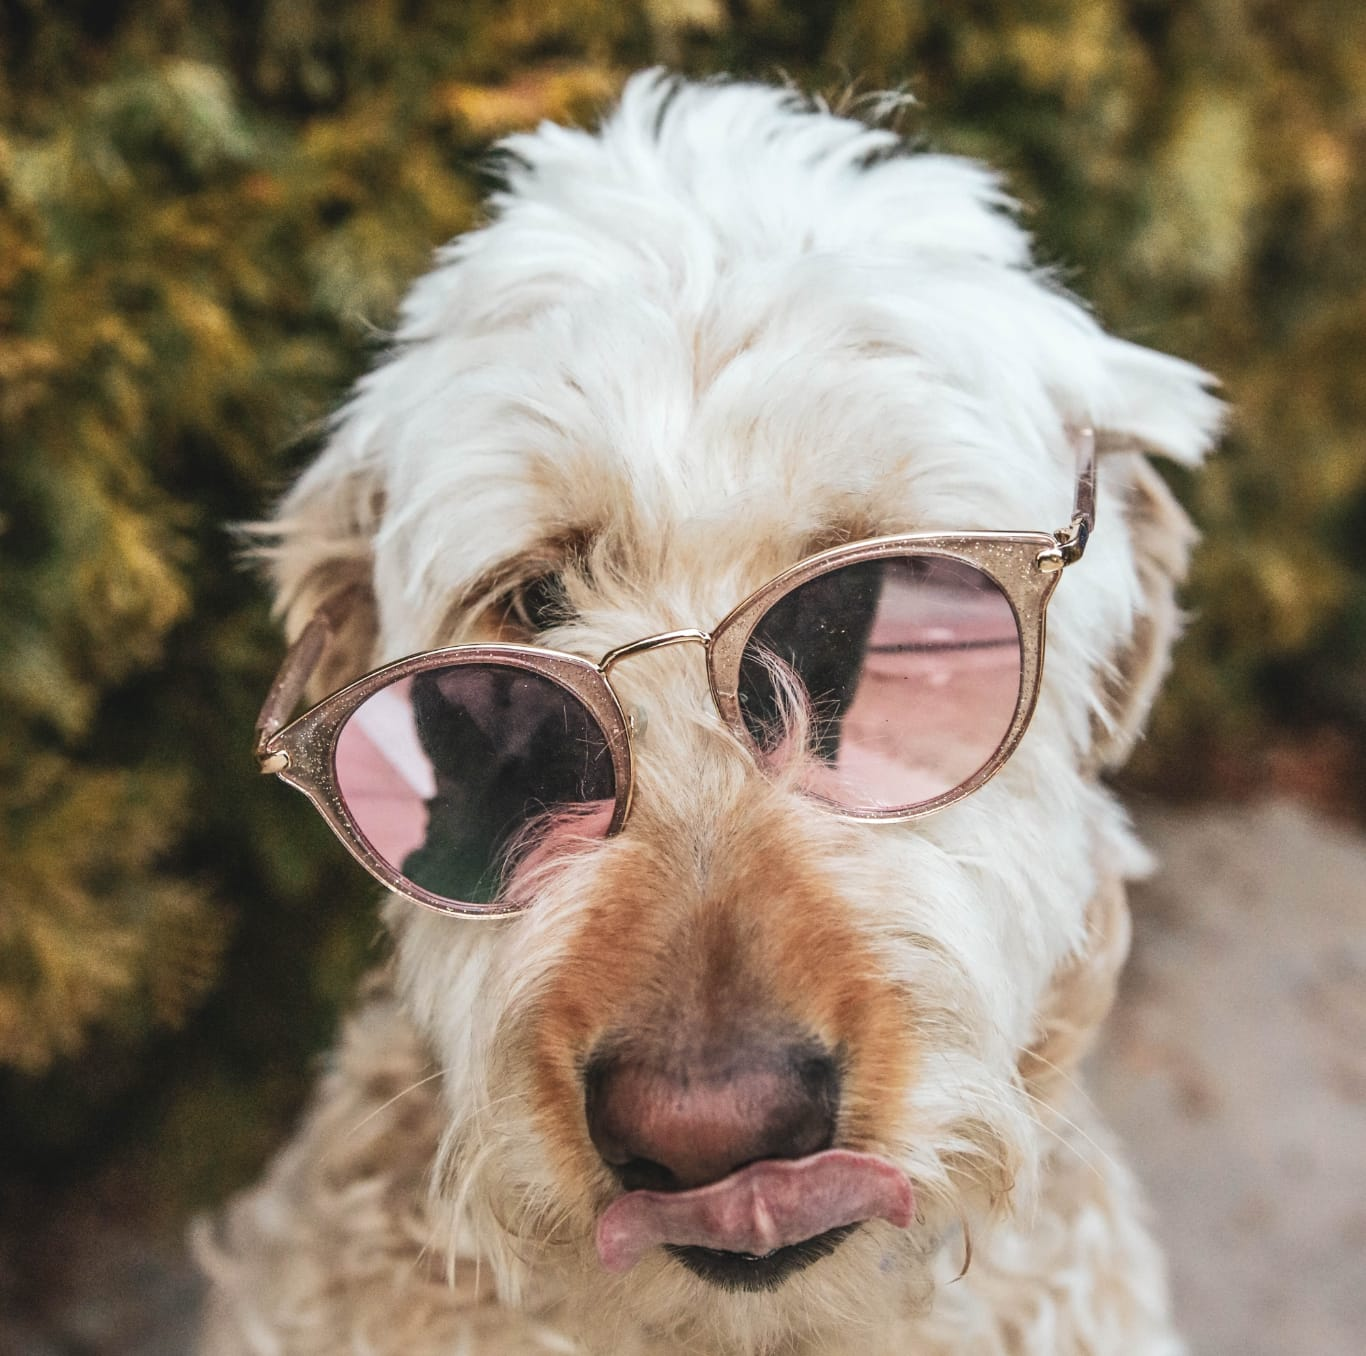 dog with crooked sunglasses on